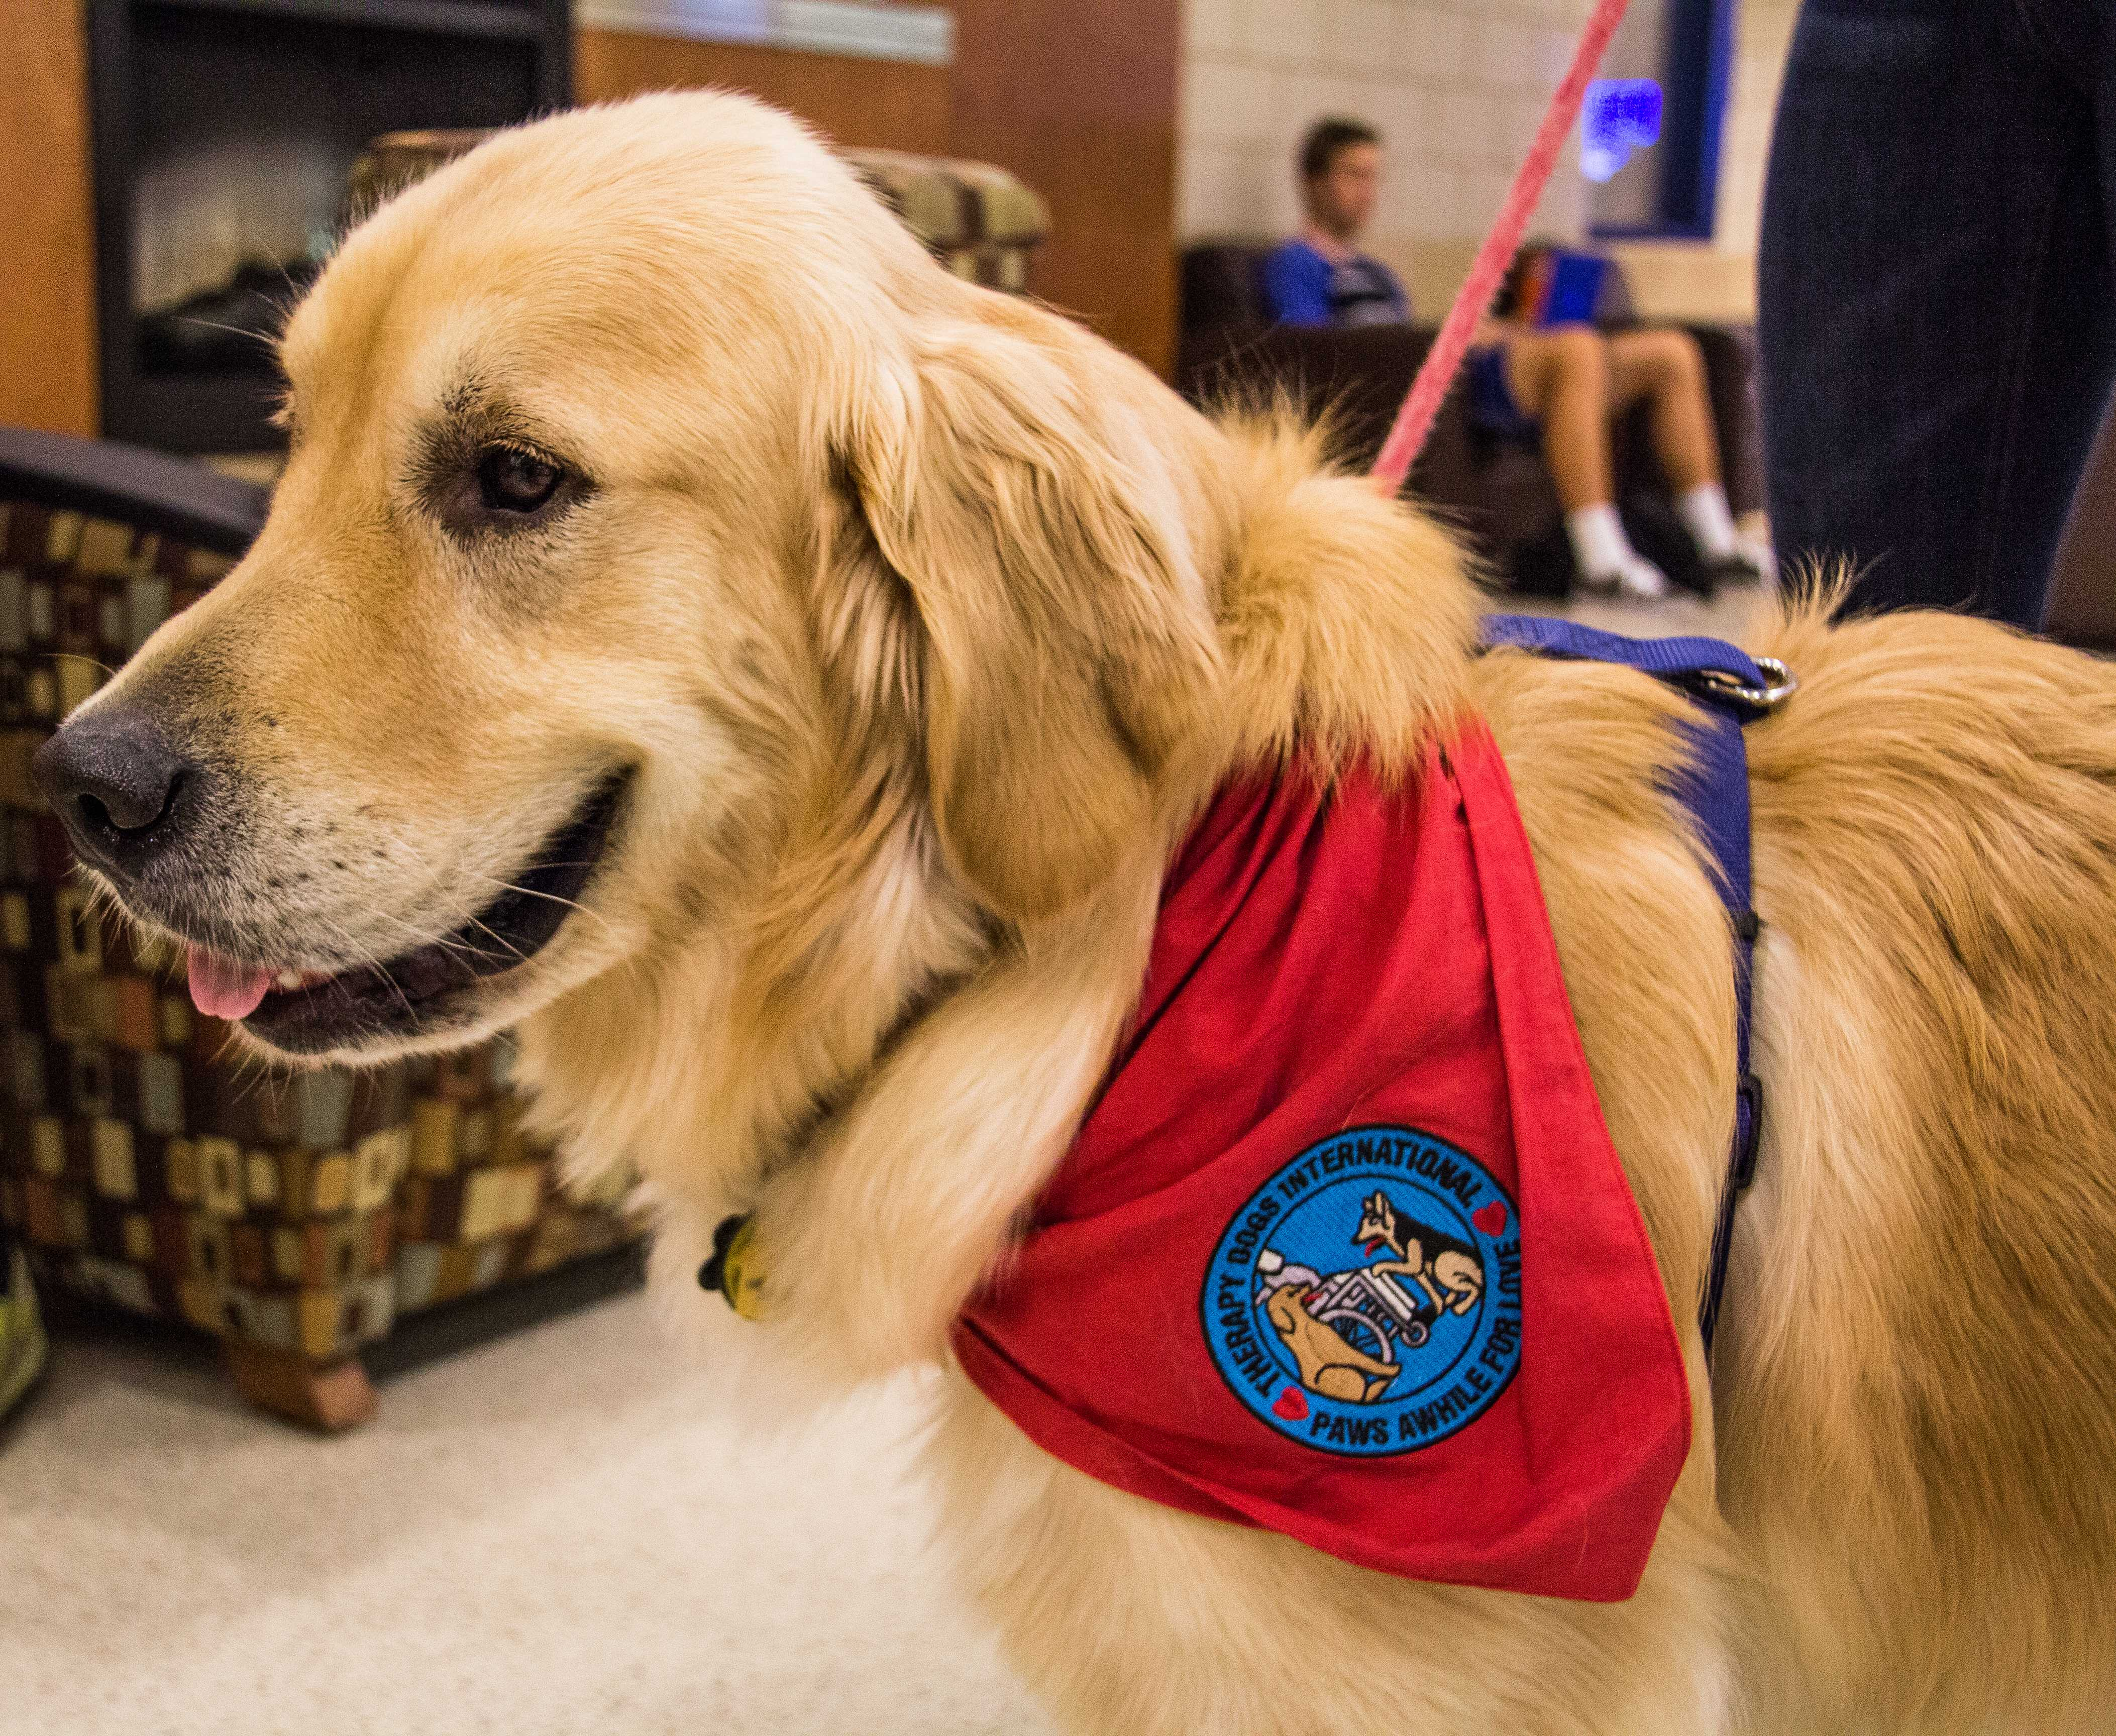 Paws for applause: Kevin is easing ruff times at Macalester